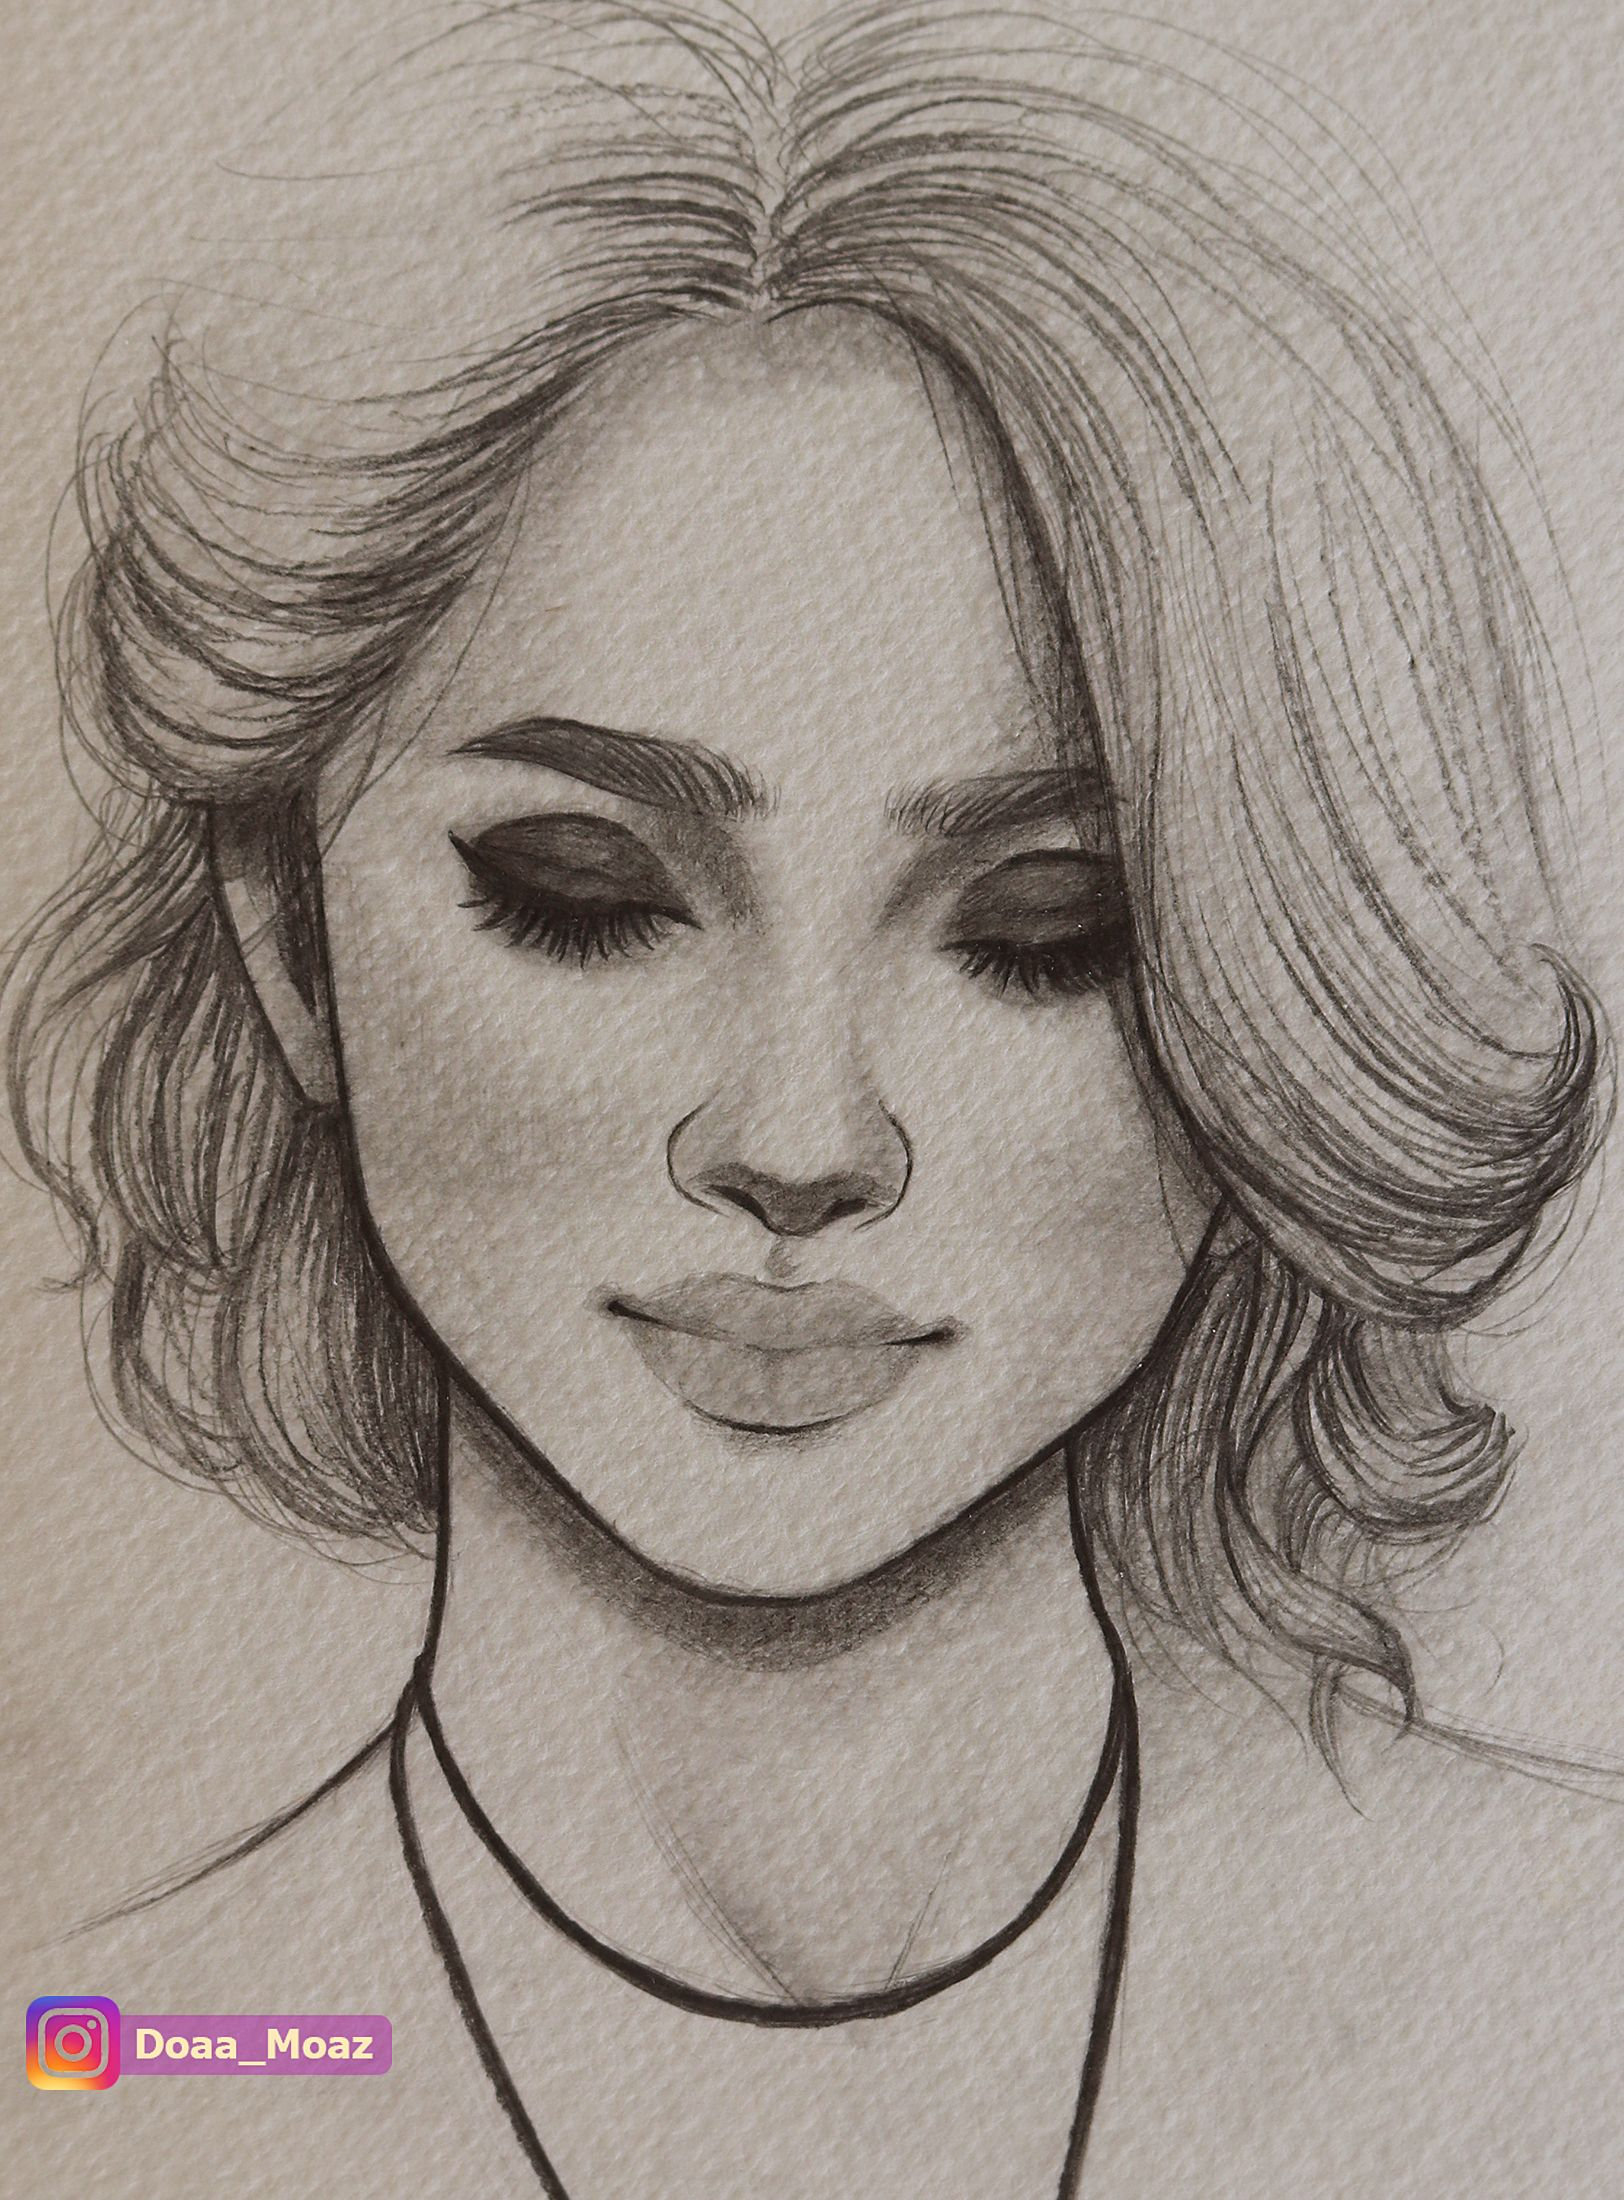 Portrait Sketch With Pencil Click To See More On Instagram Drawing Art Portrait Sketch Art Drawings Sketches Creative Girl Drawing Sketches Art Drawings